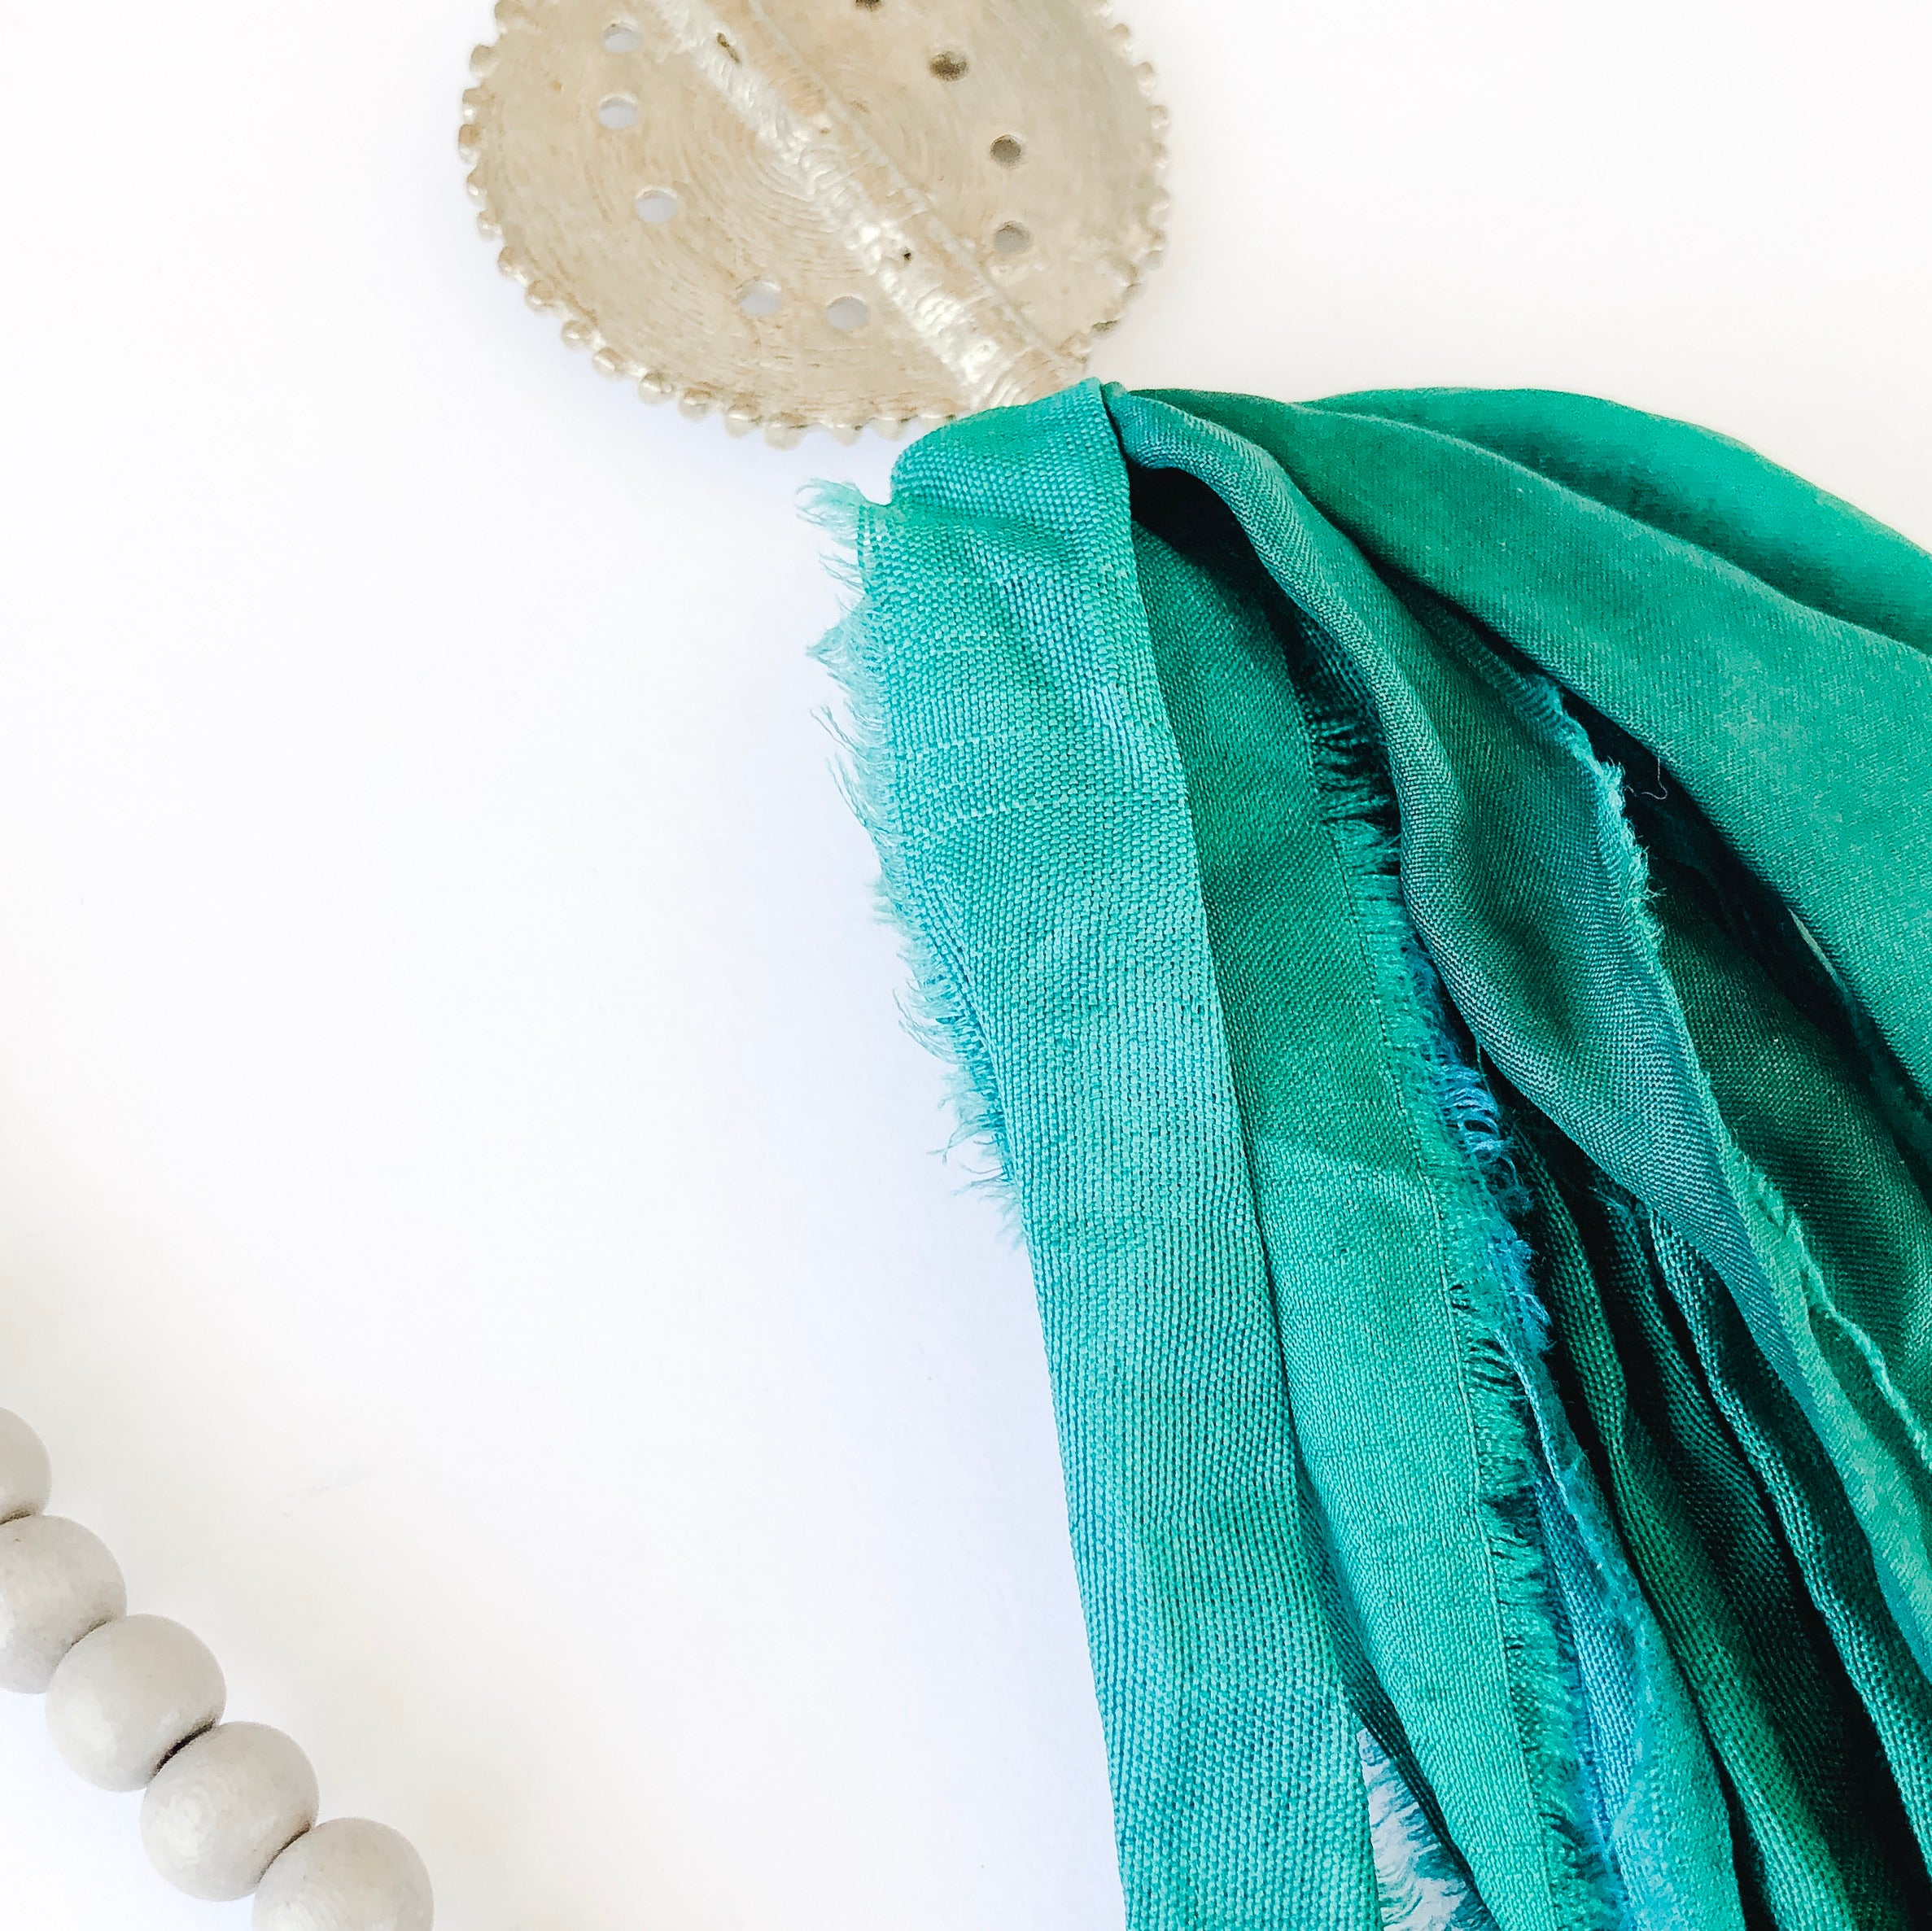 Sari not Sari Necklace | Emerald Silks